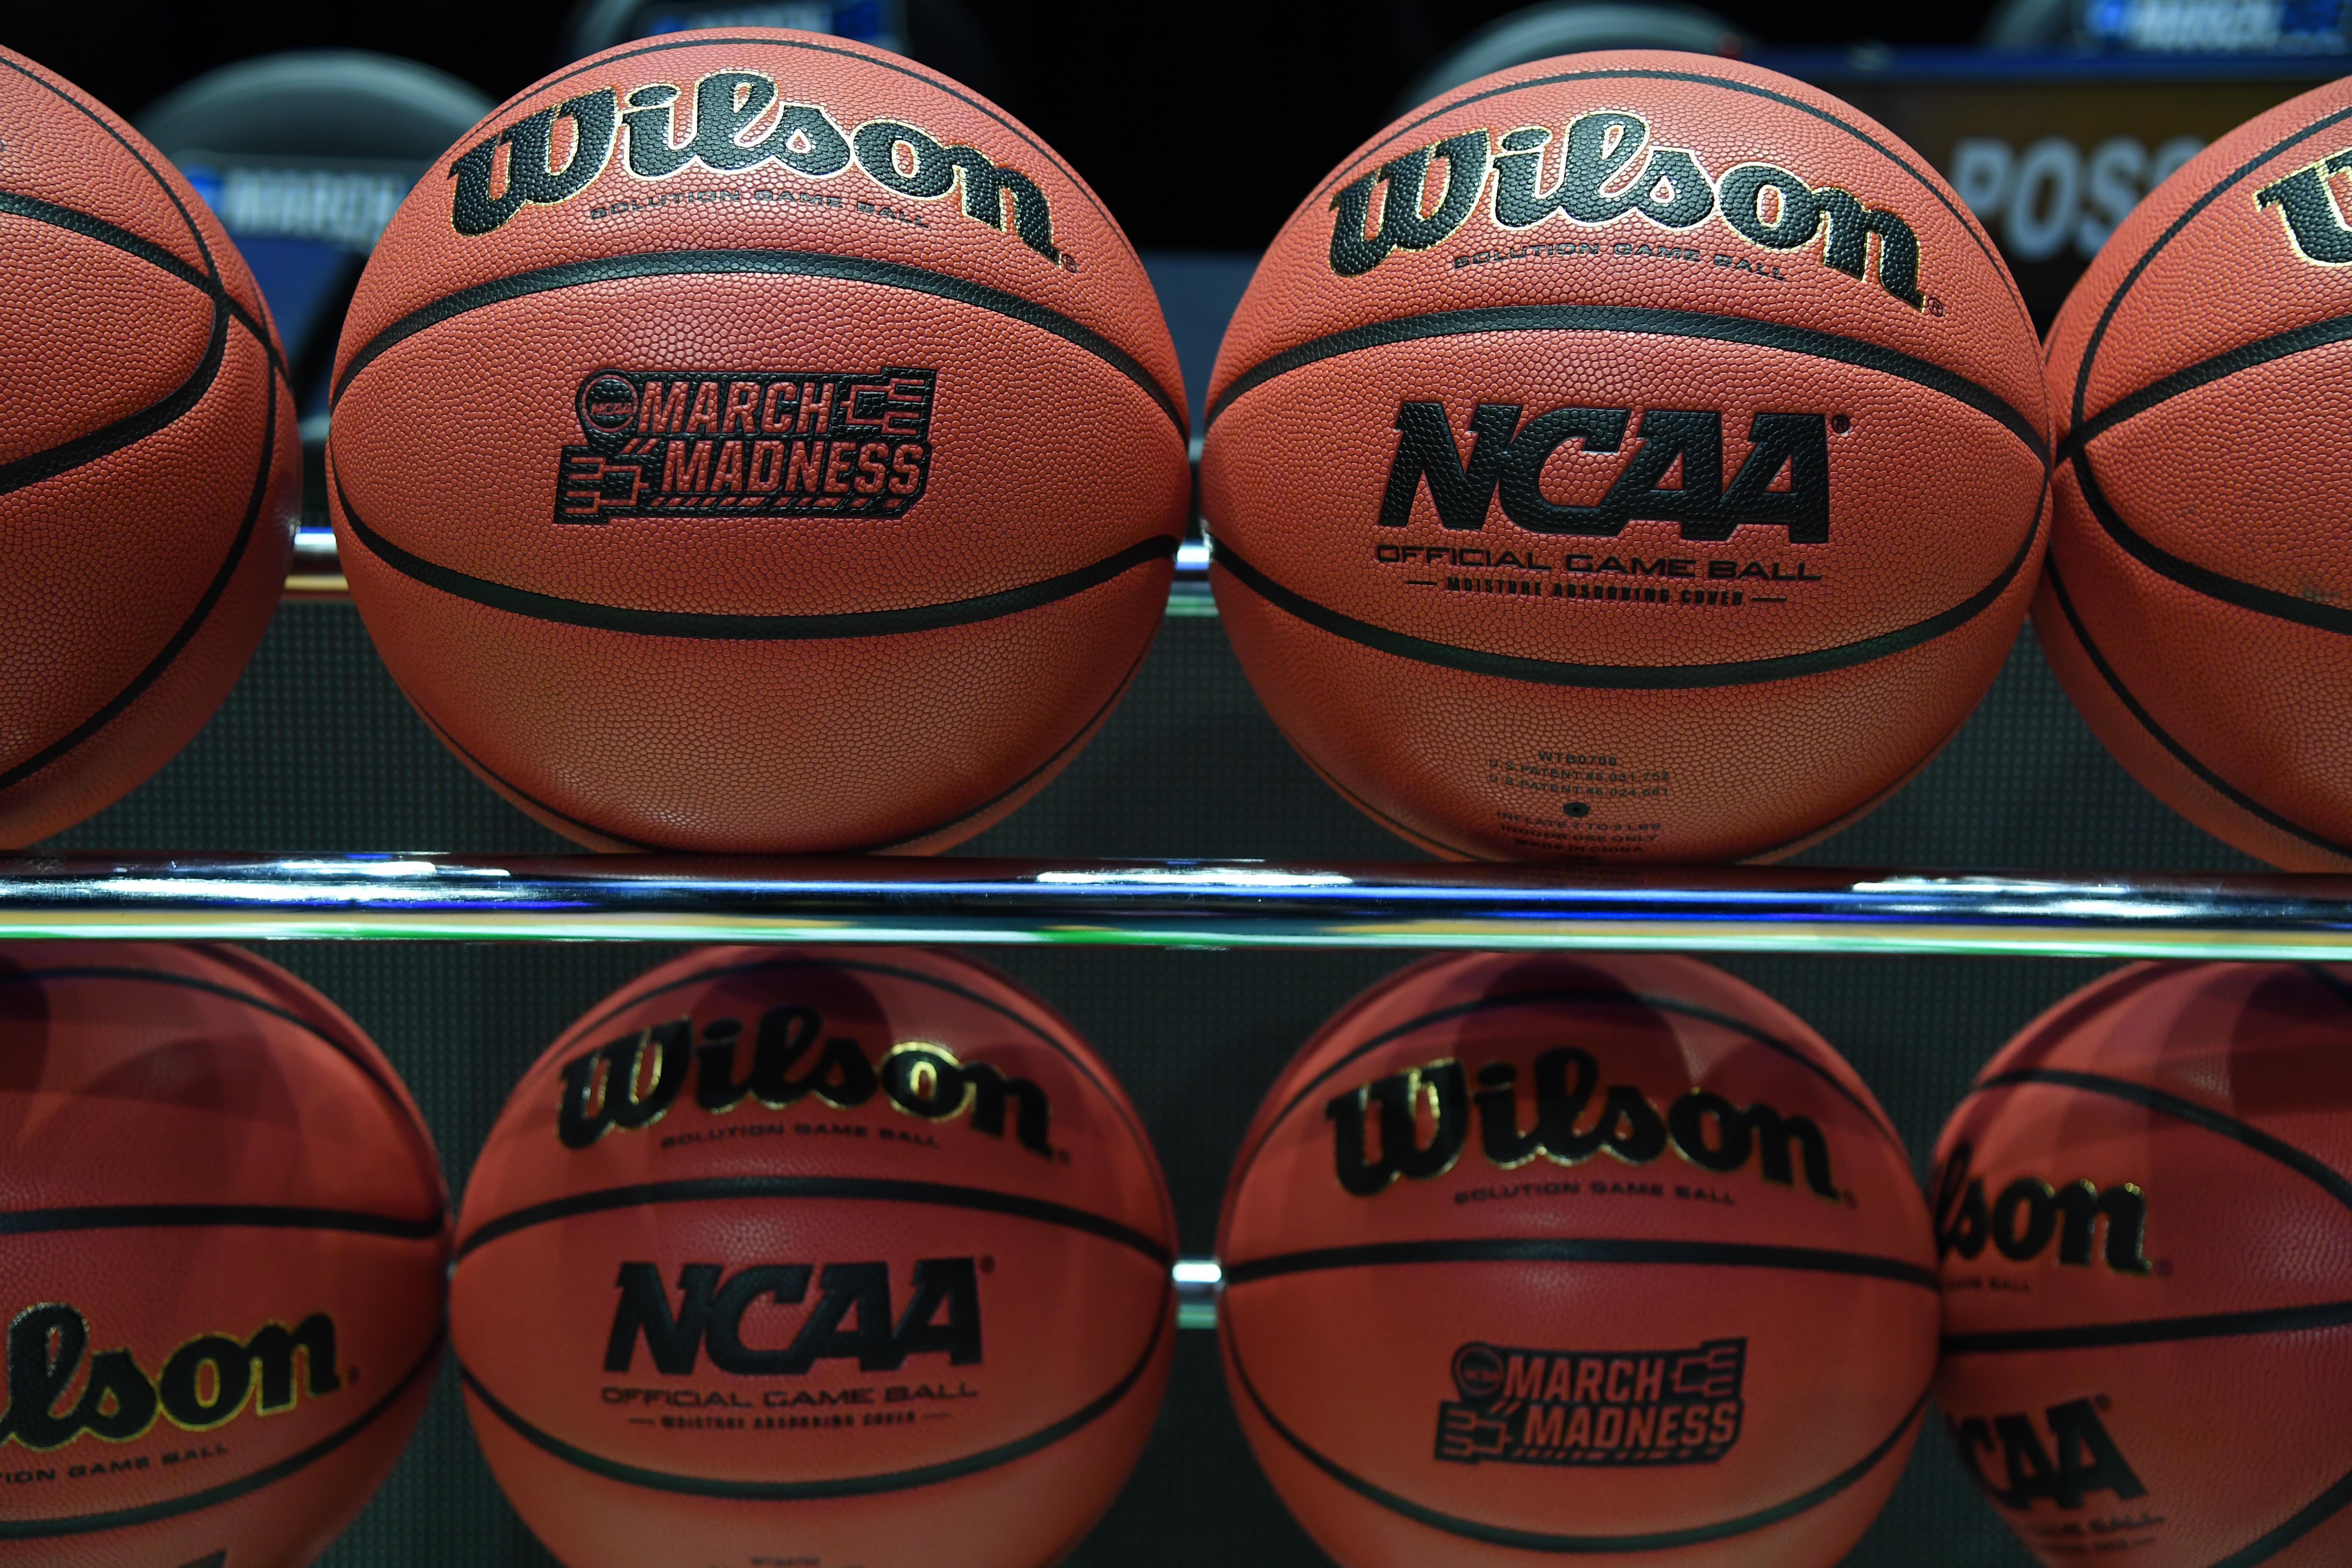 Warren Buffett offers $1 million for life for perfect Sweet 16 bracket (to employees only)